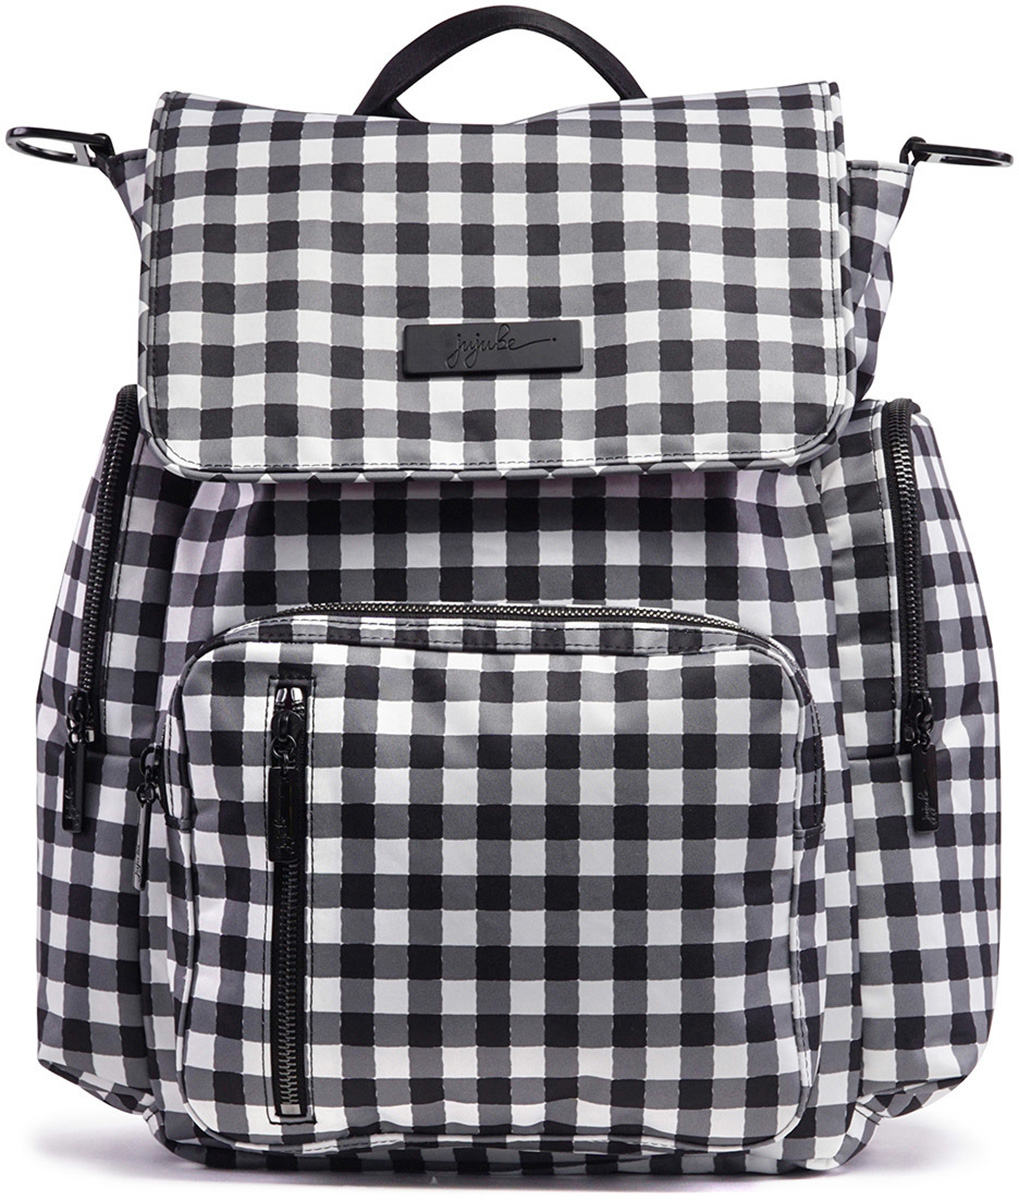 Ju Be Sporty 3 Way Diaper Bag Gingham Style